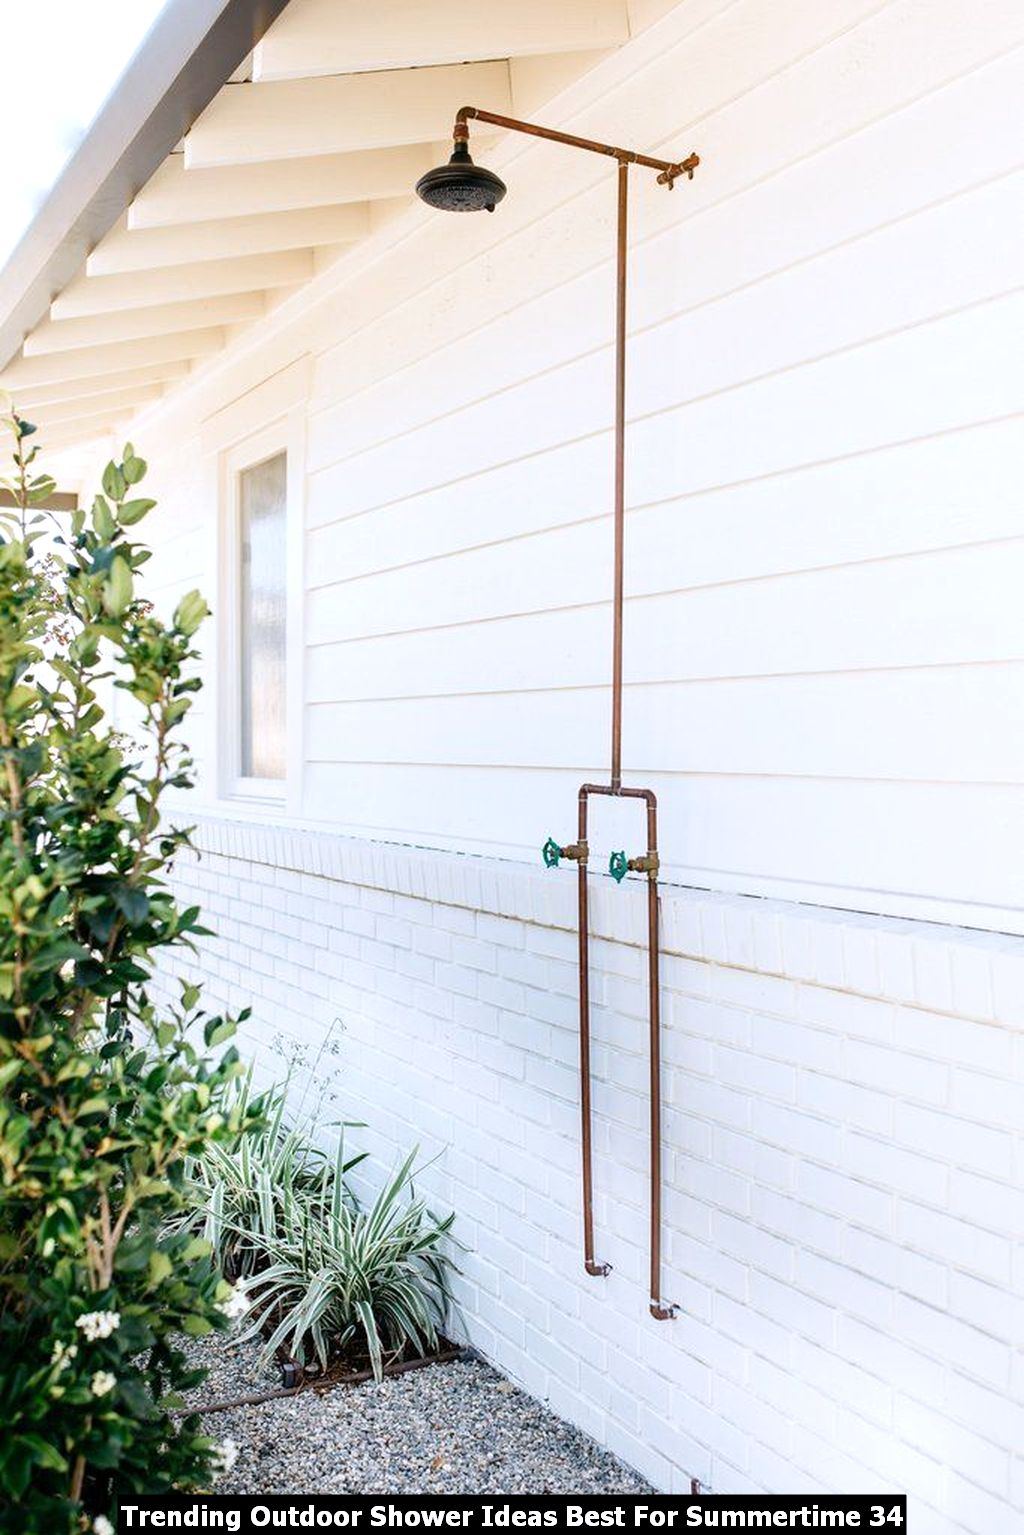 Trending Outdoor Shower Ideas Best For Summertime 34